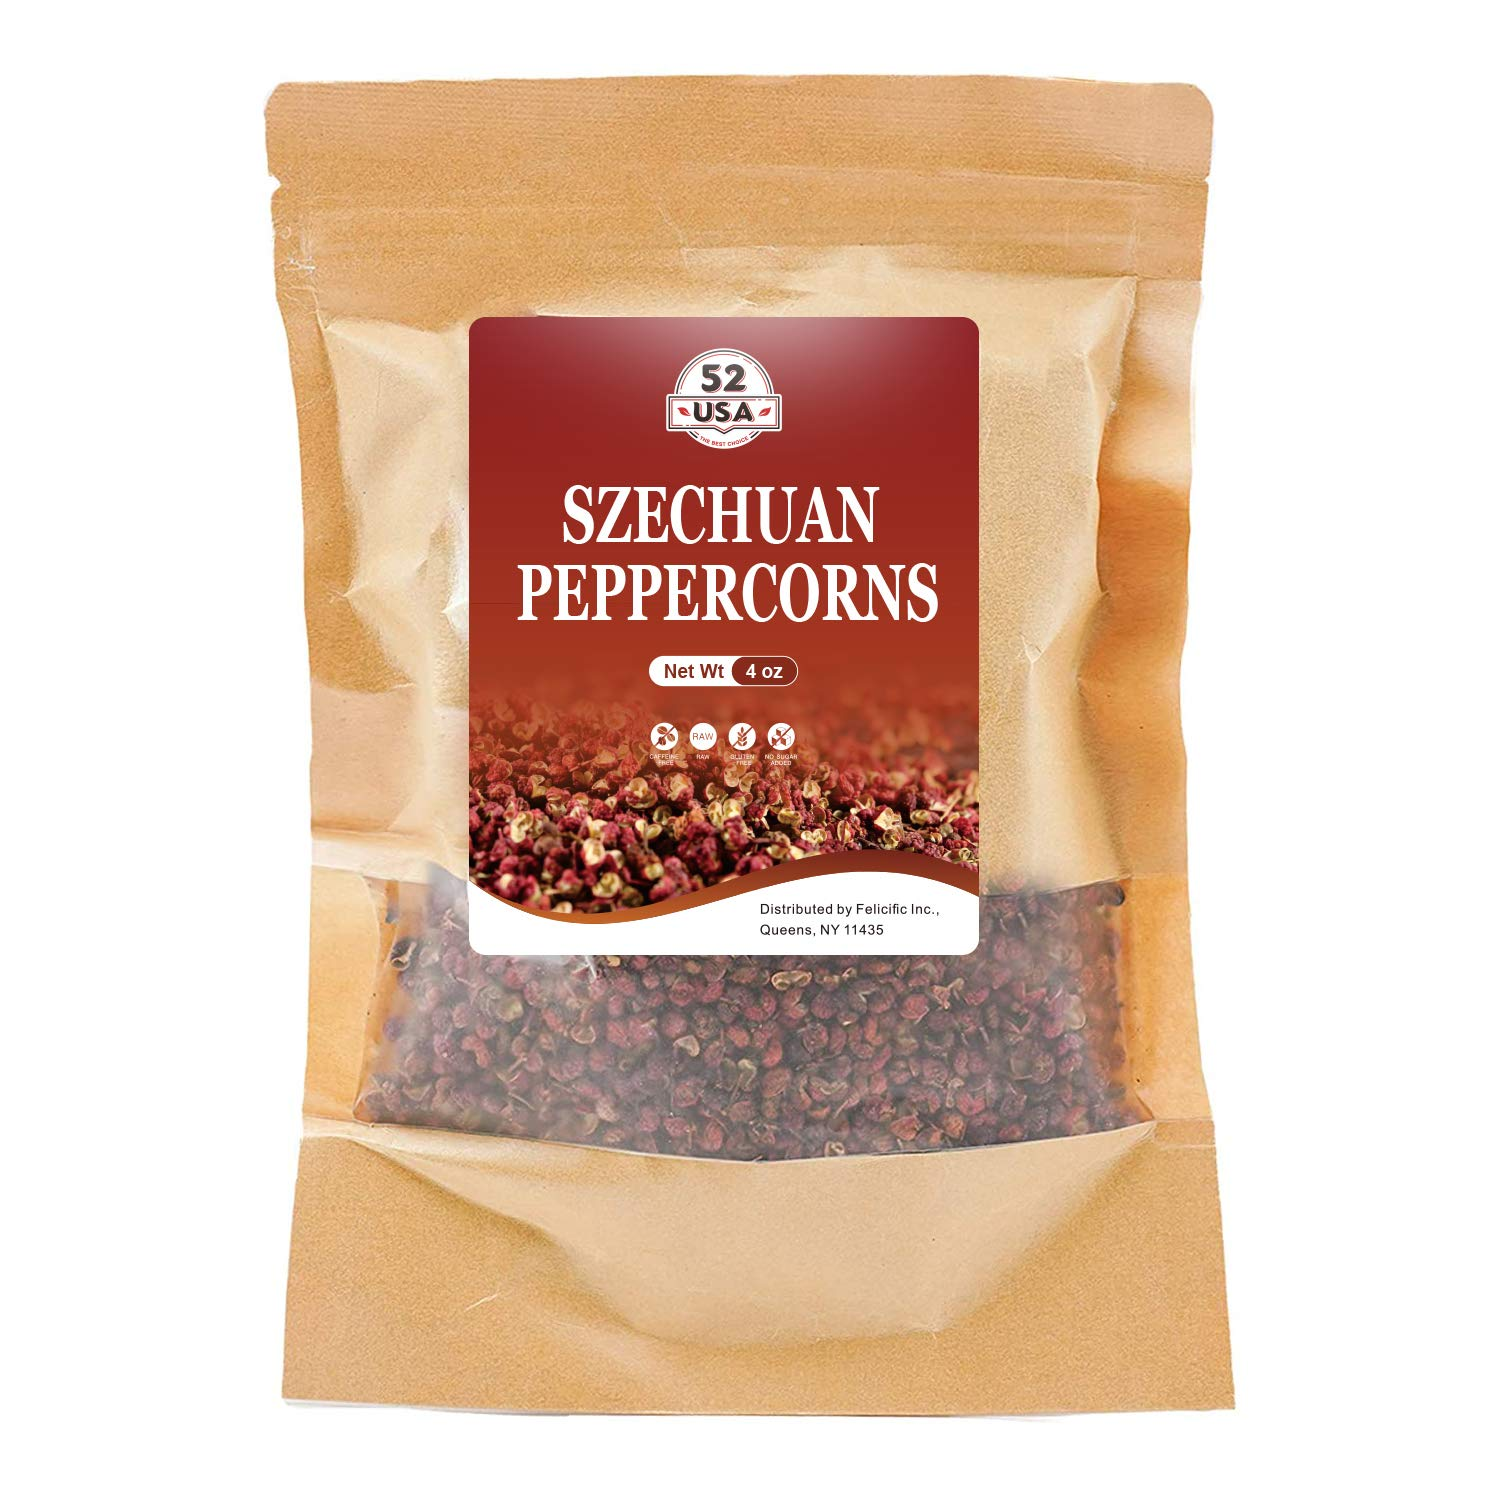 52USA Szechuan Peppercorns(4OZ), Sichuan Red Peppercorns, Whole Szechuan Peppercorns, Sichuan peppercorns, Key Ingredients for Mapo Tofu and Scihuan Dishes